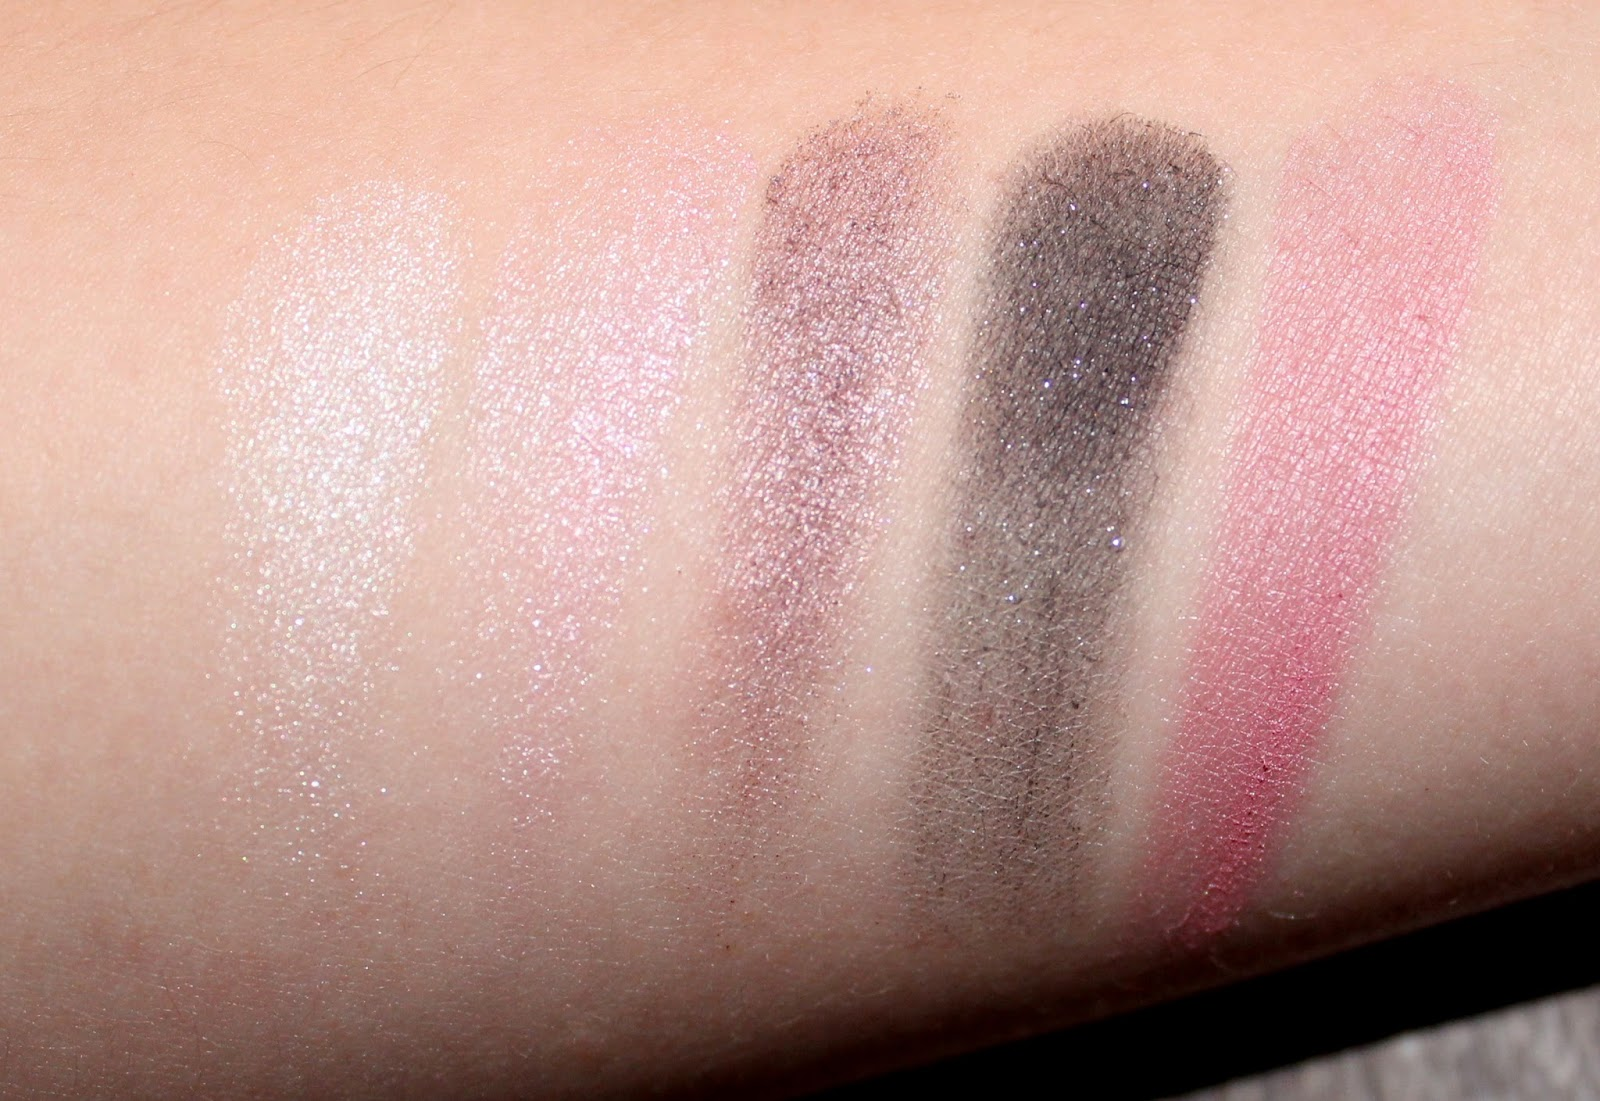 Clinique's The Nutcracker Act 1 Palette Swatches